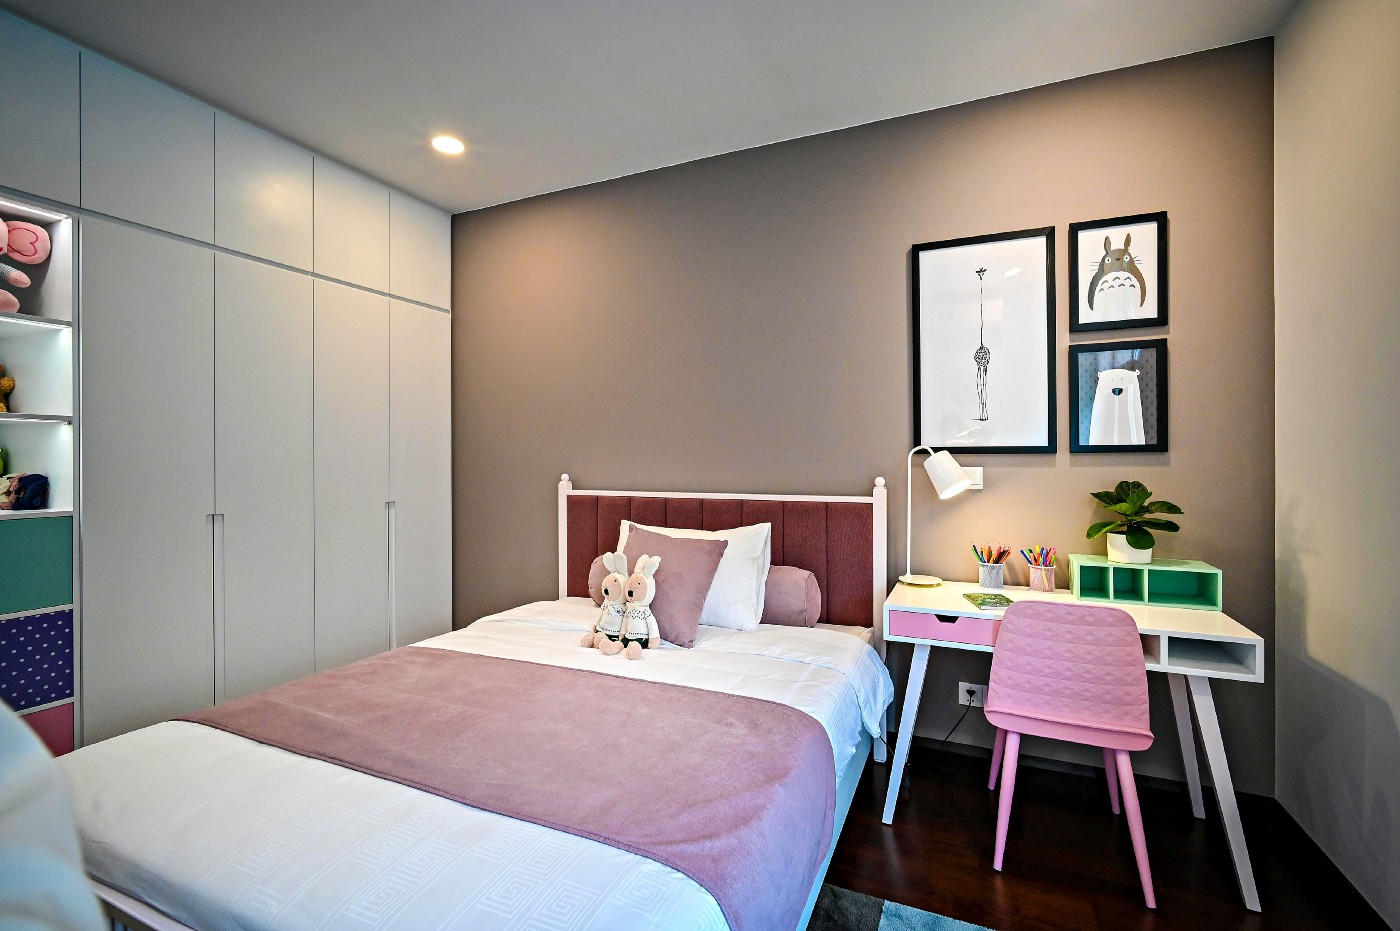 A very tidy, small, child's room (probably a girl's). There is a pink chair at the desk and two plush rabbits sit against the pillow on the bed which has a pink blanket and pink headboard.